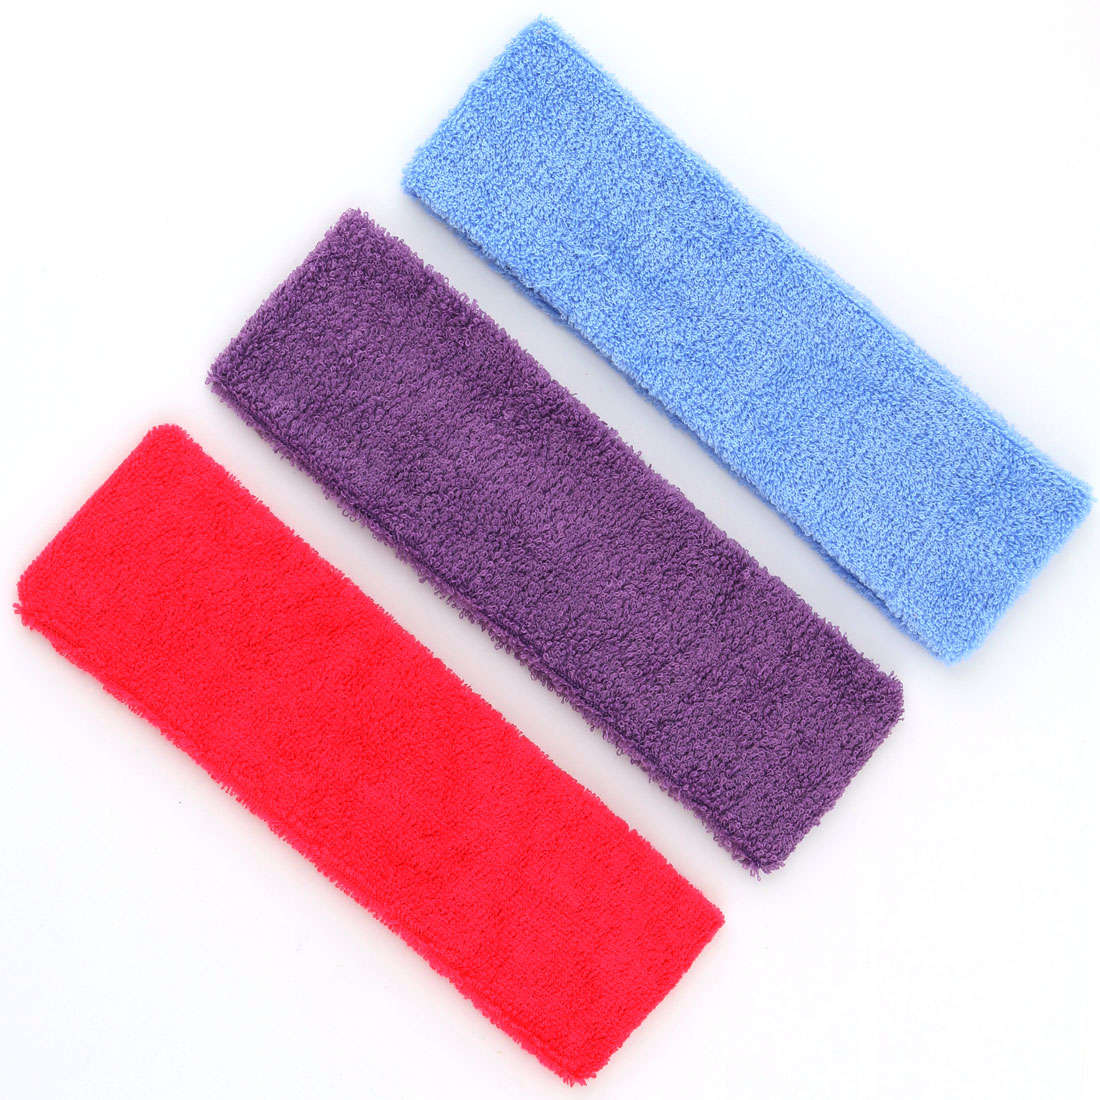 Physical Yoga Volleyball Elastic Hairdressing Hair Band Sweatband Headband 3 PCS